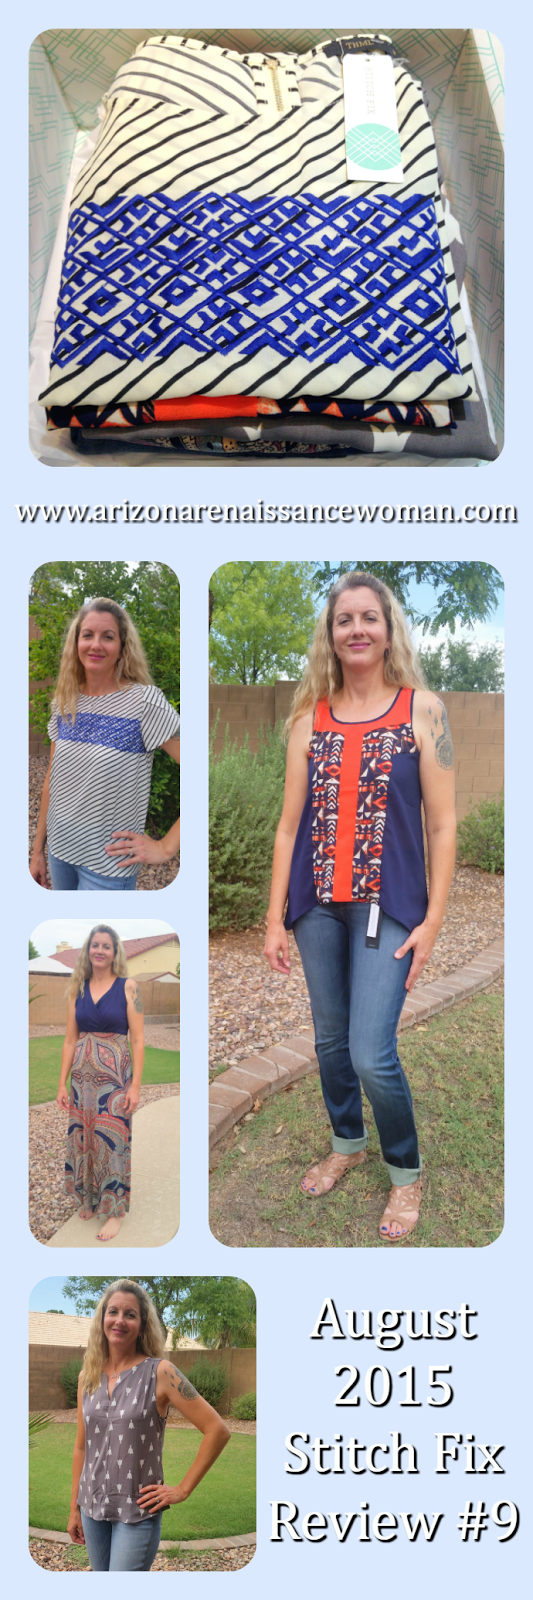 August 2015 Stitch Fix Review Collage